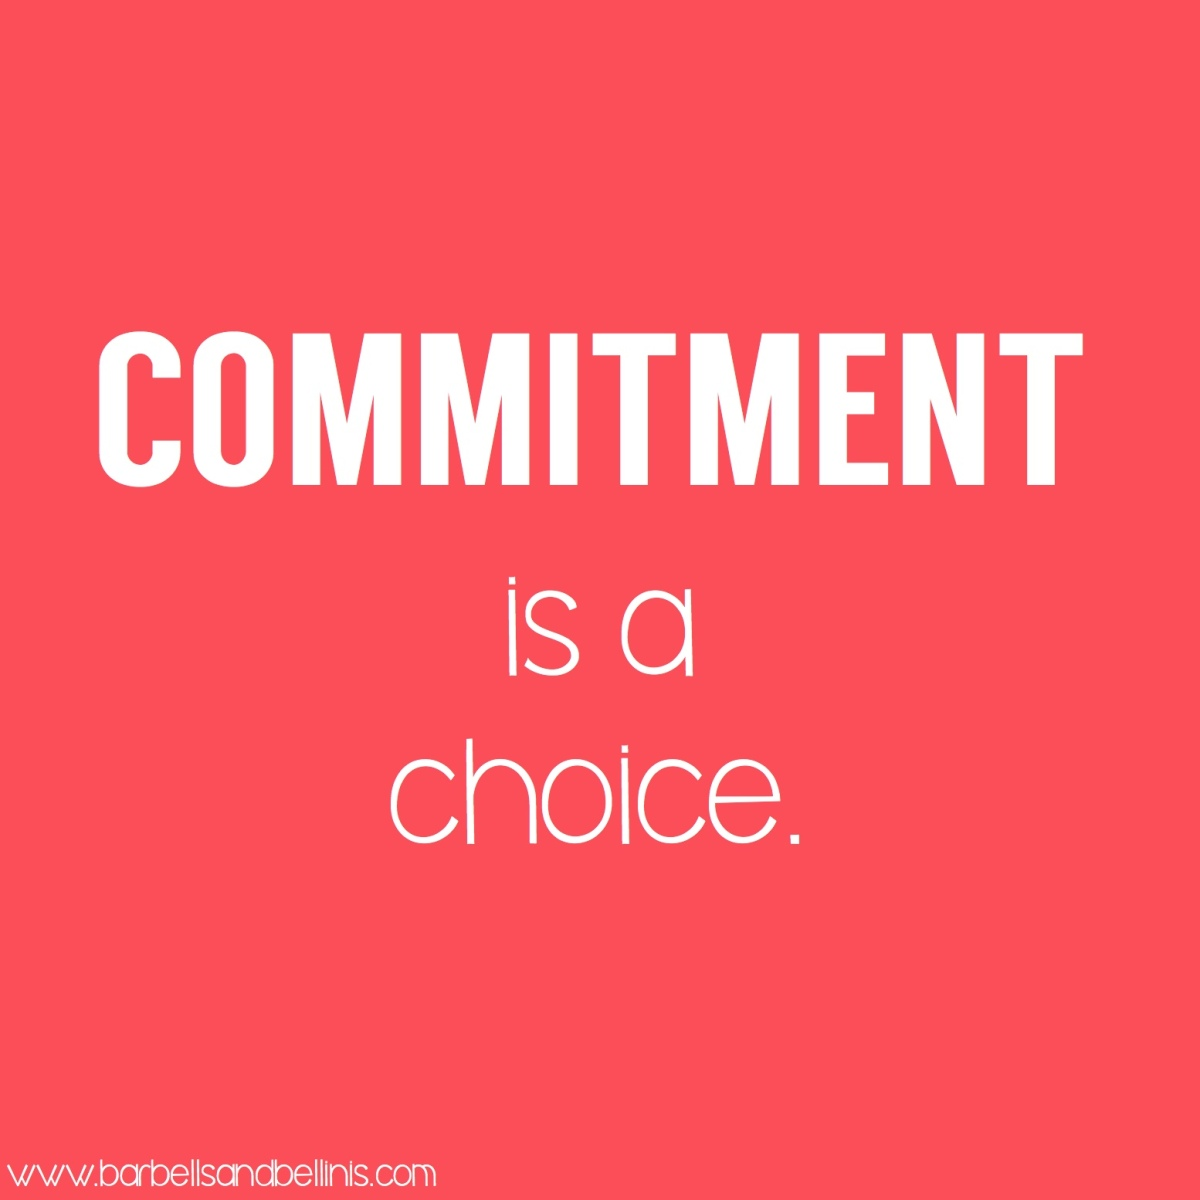 my choices and commitments Commitment quotes from brainyquote, an extensive collection of quotations by famous authors, celebrities, and newsmakers once you have commitment, you need the discipline and hard work to get you there.